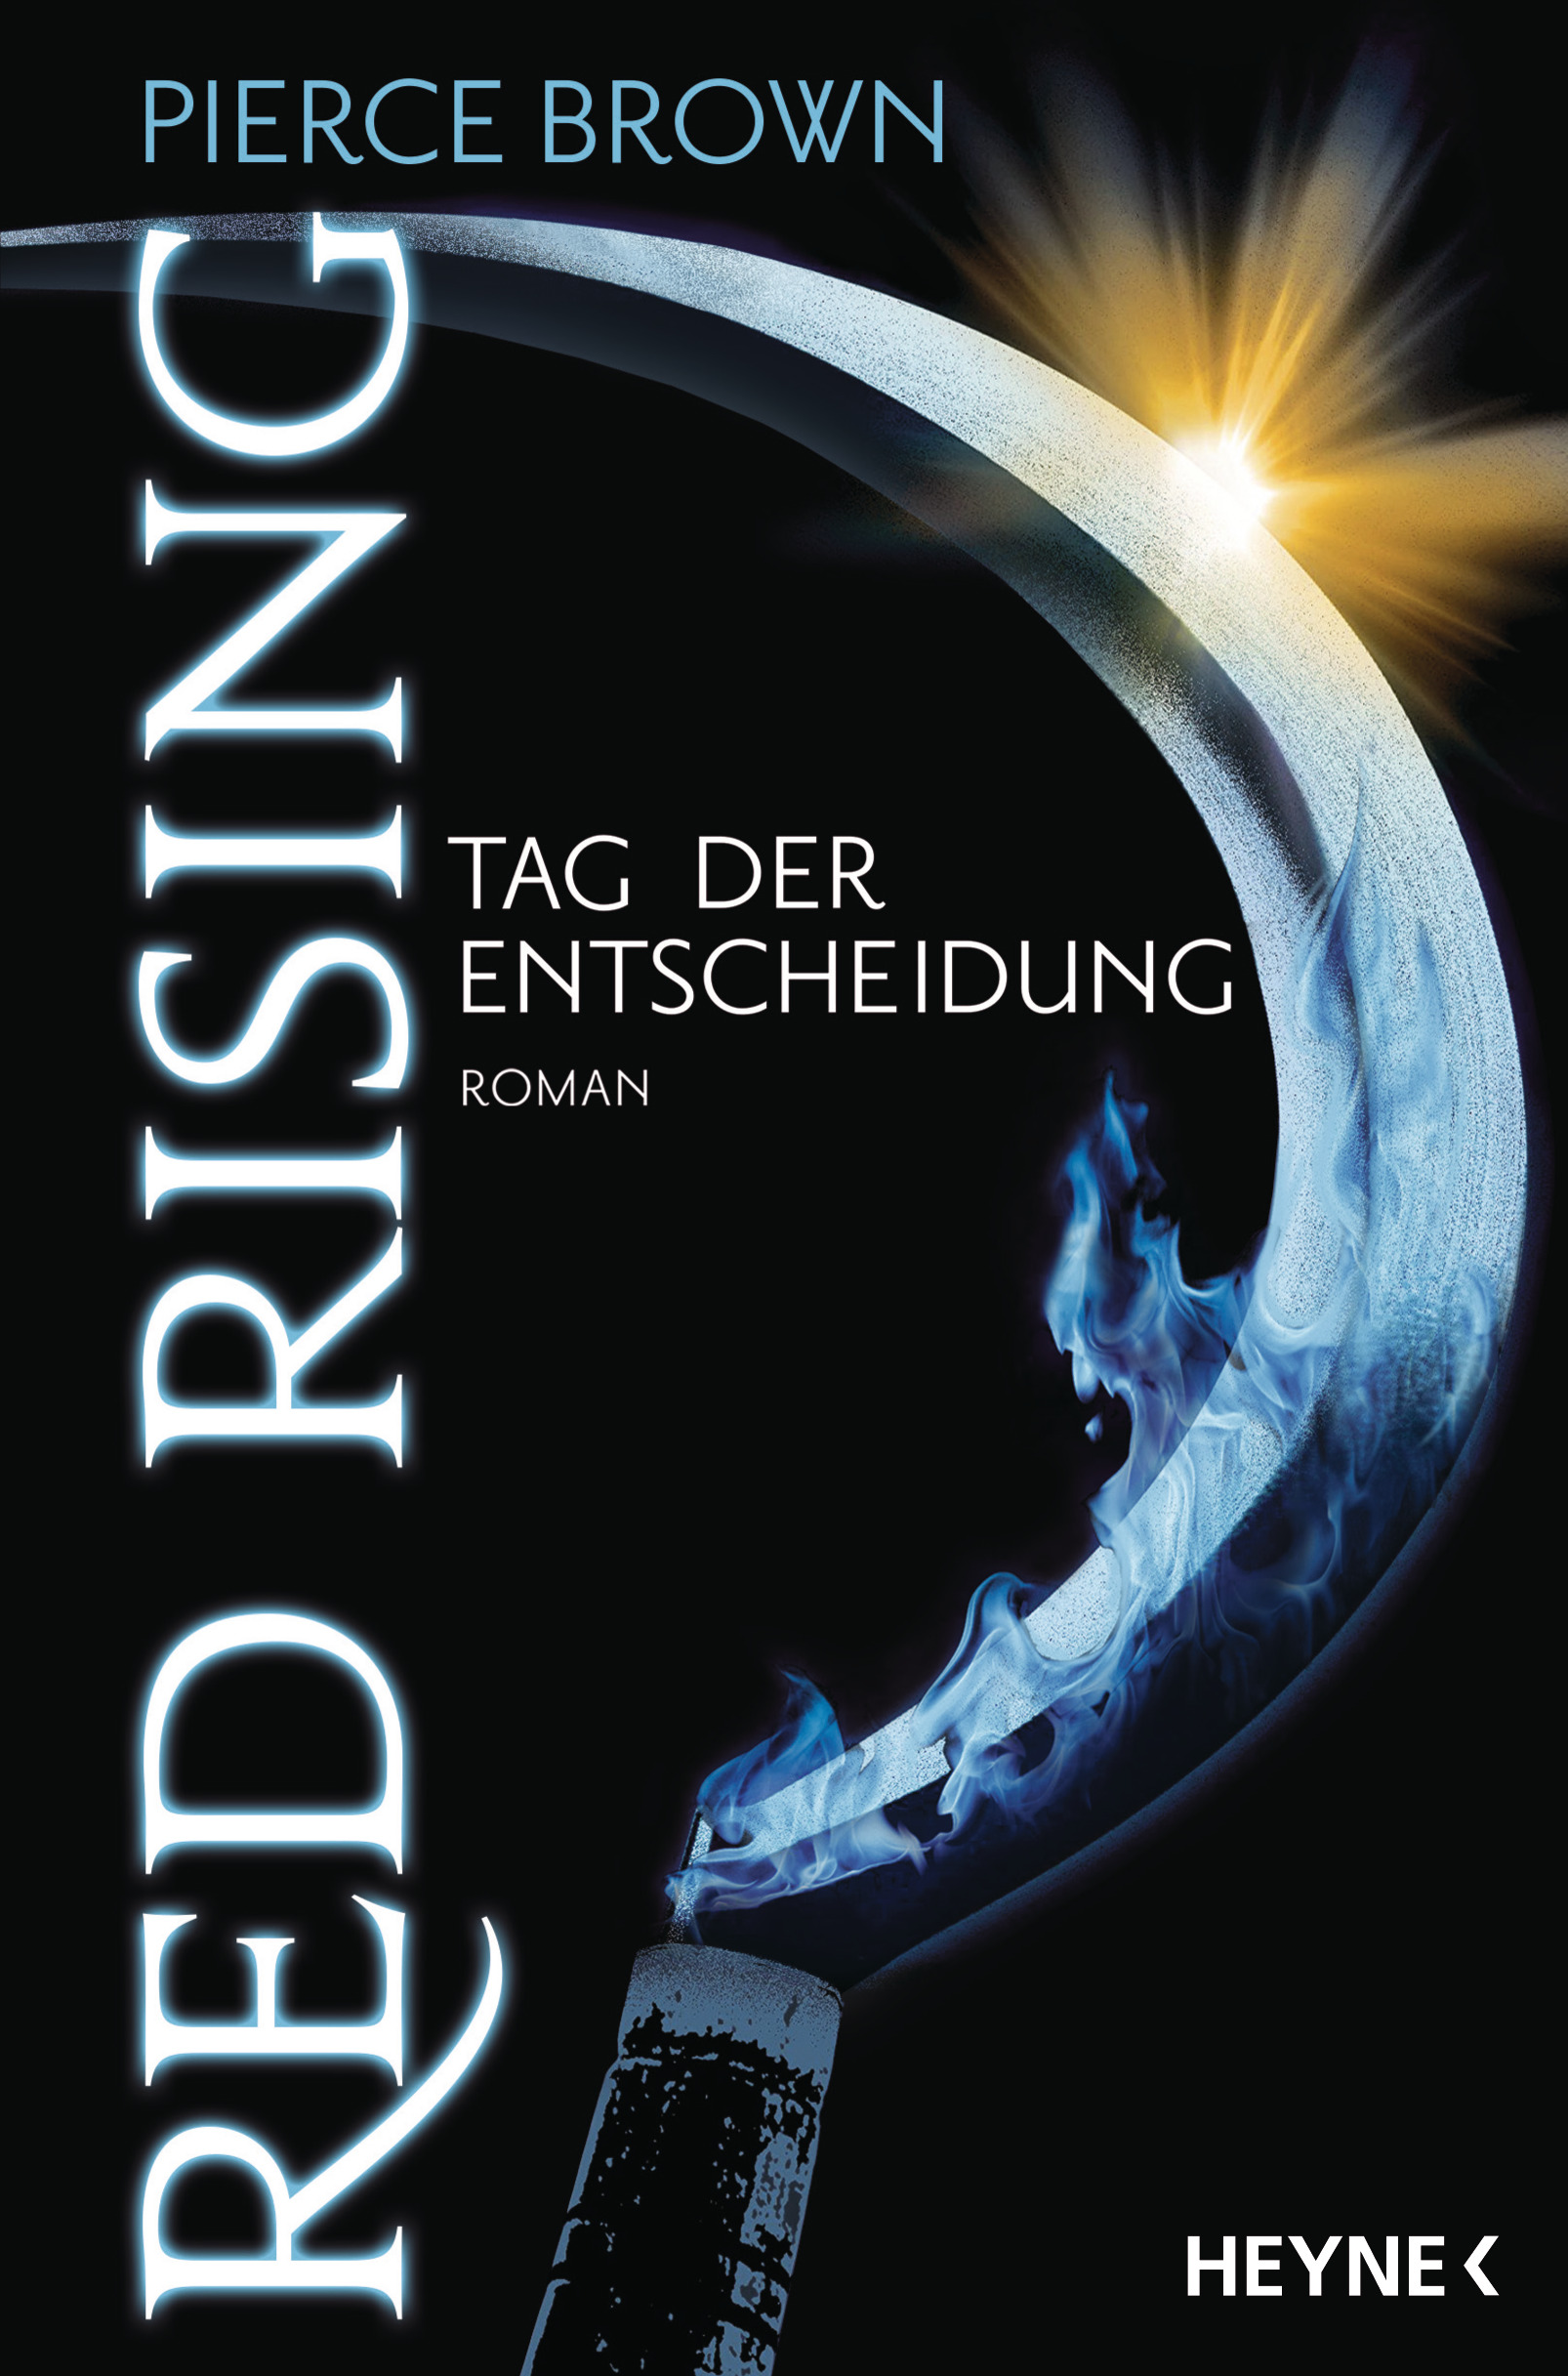 https://www.randomhouse.de/content/edition/covervoila_hires/Brown_PRed_Rising_3-TagEntscheidung_173129.jpg